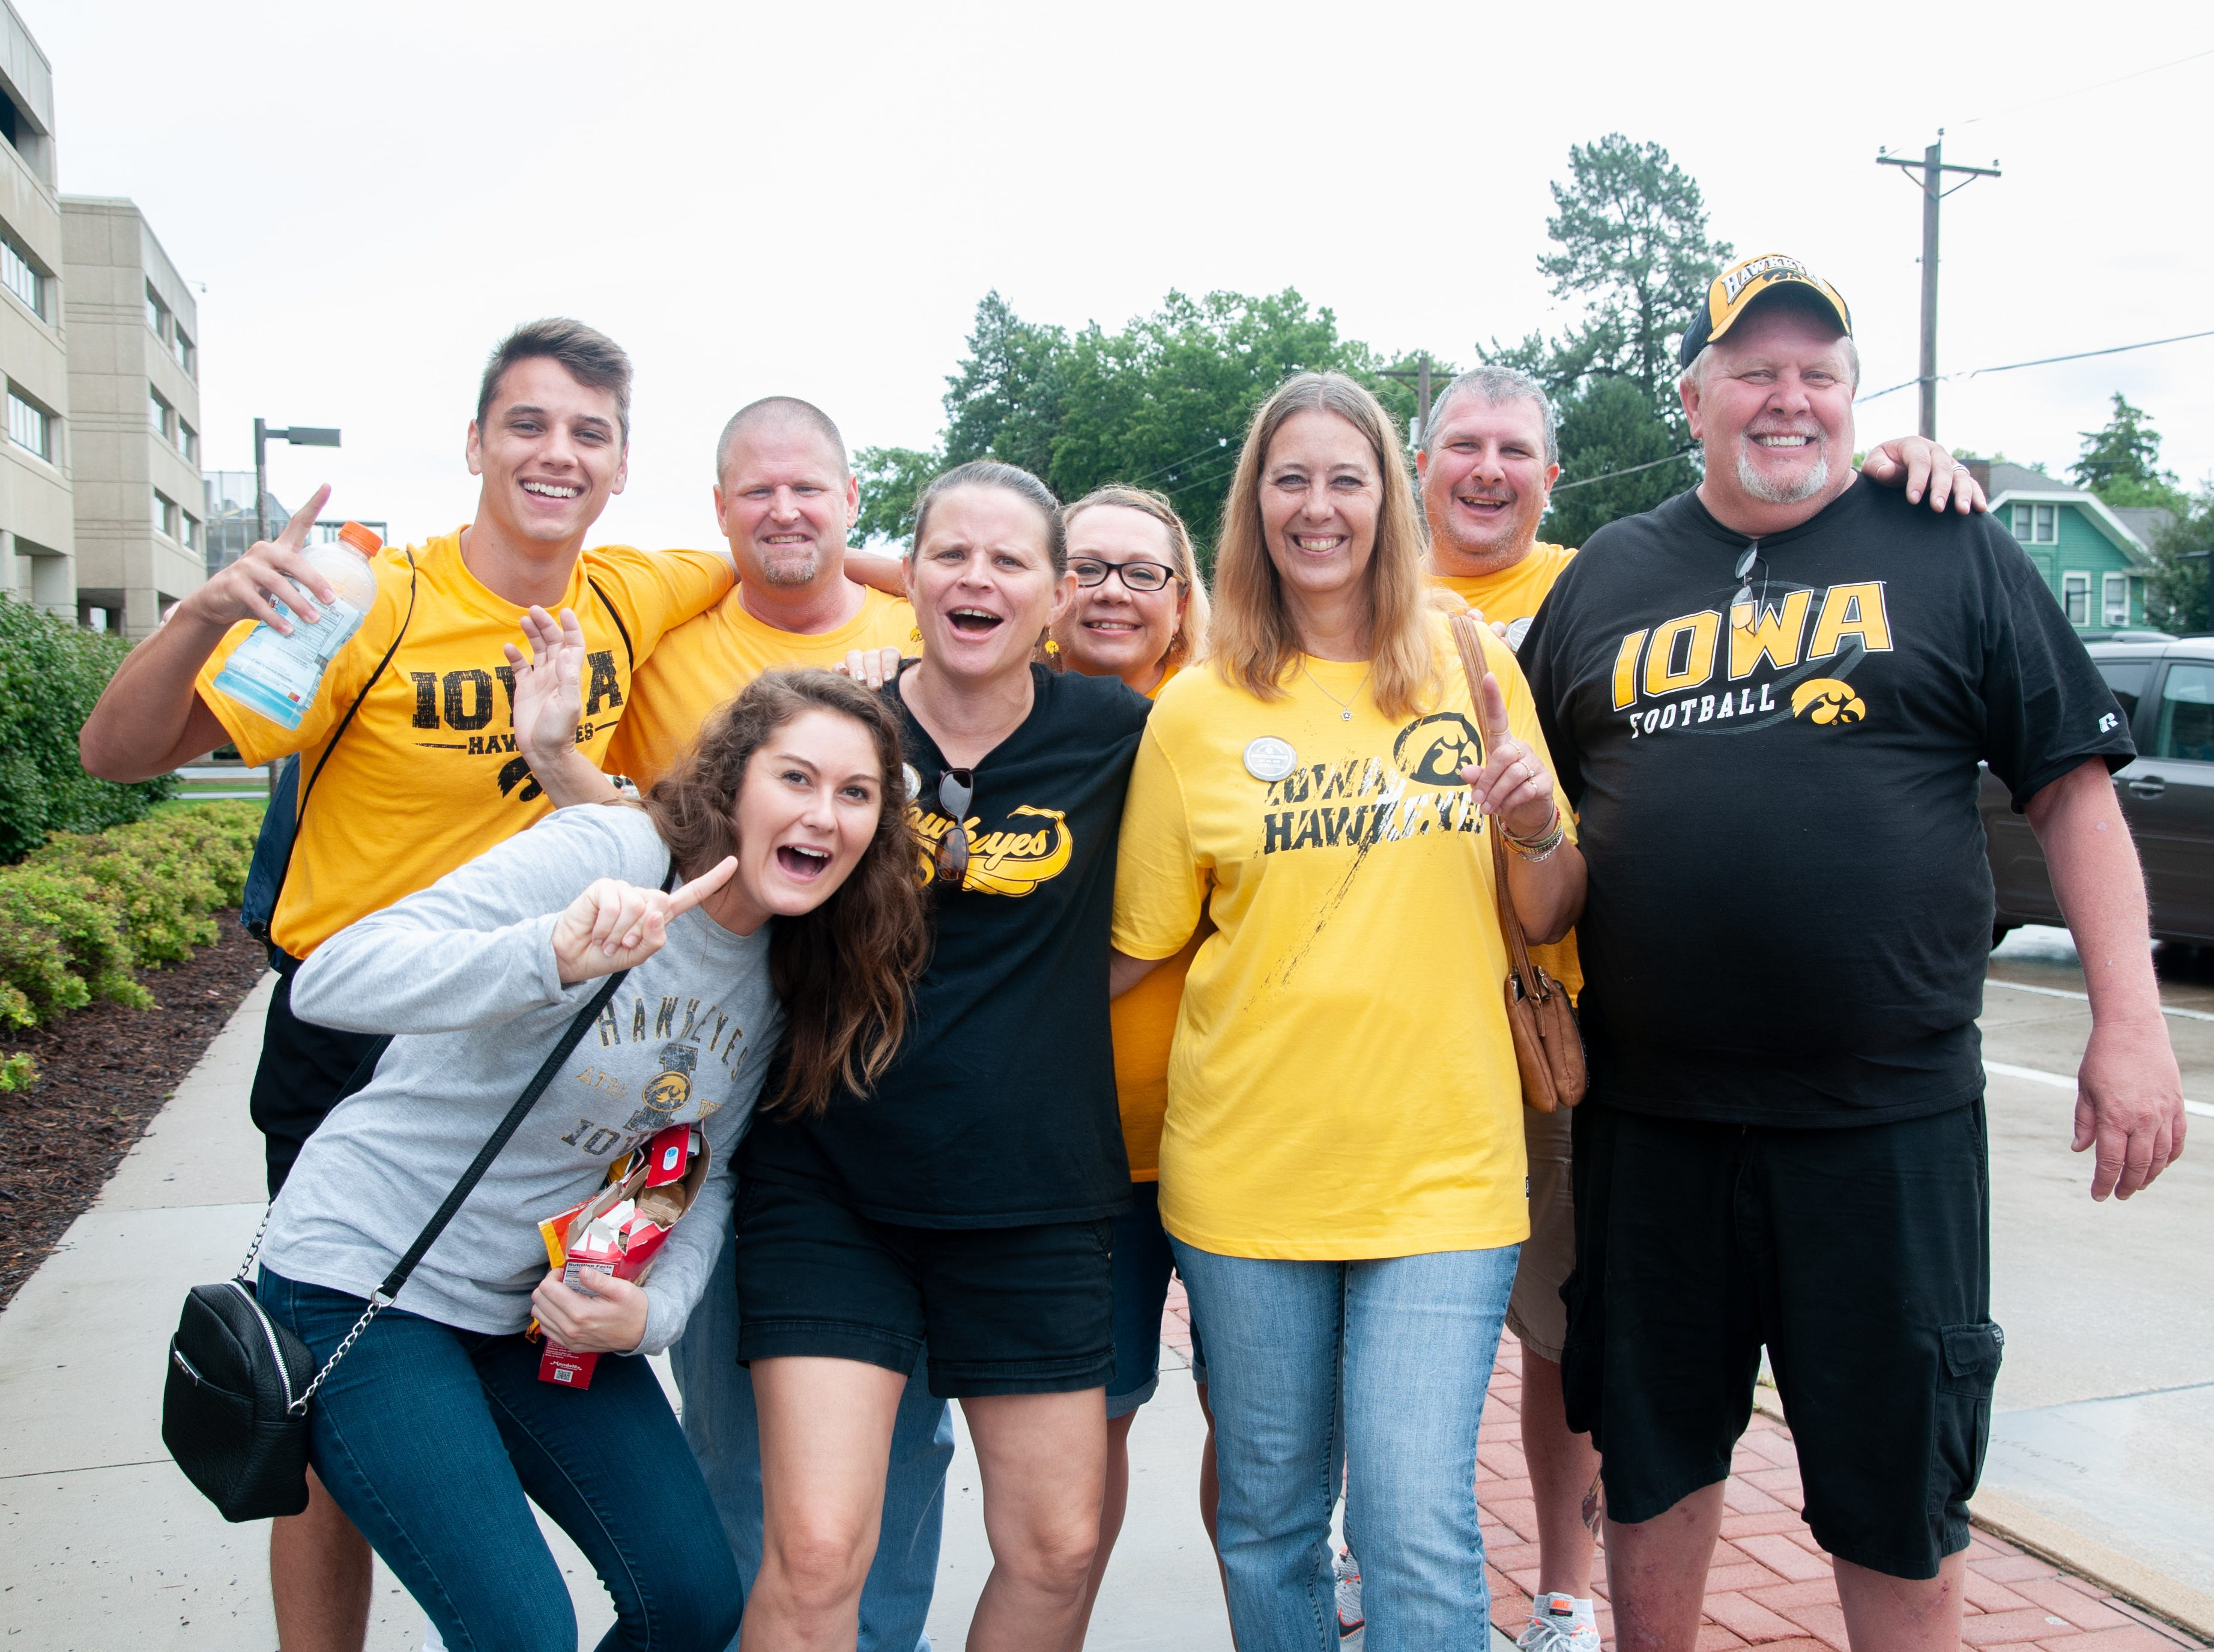 The Conger family and friends, of Davenport, Saturday, Sept. 1, 2018, while tailgating before the Iowa game against Northern Illinois in Iowa City.